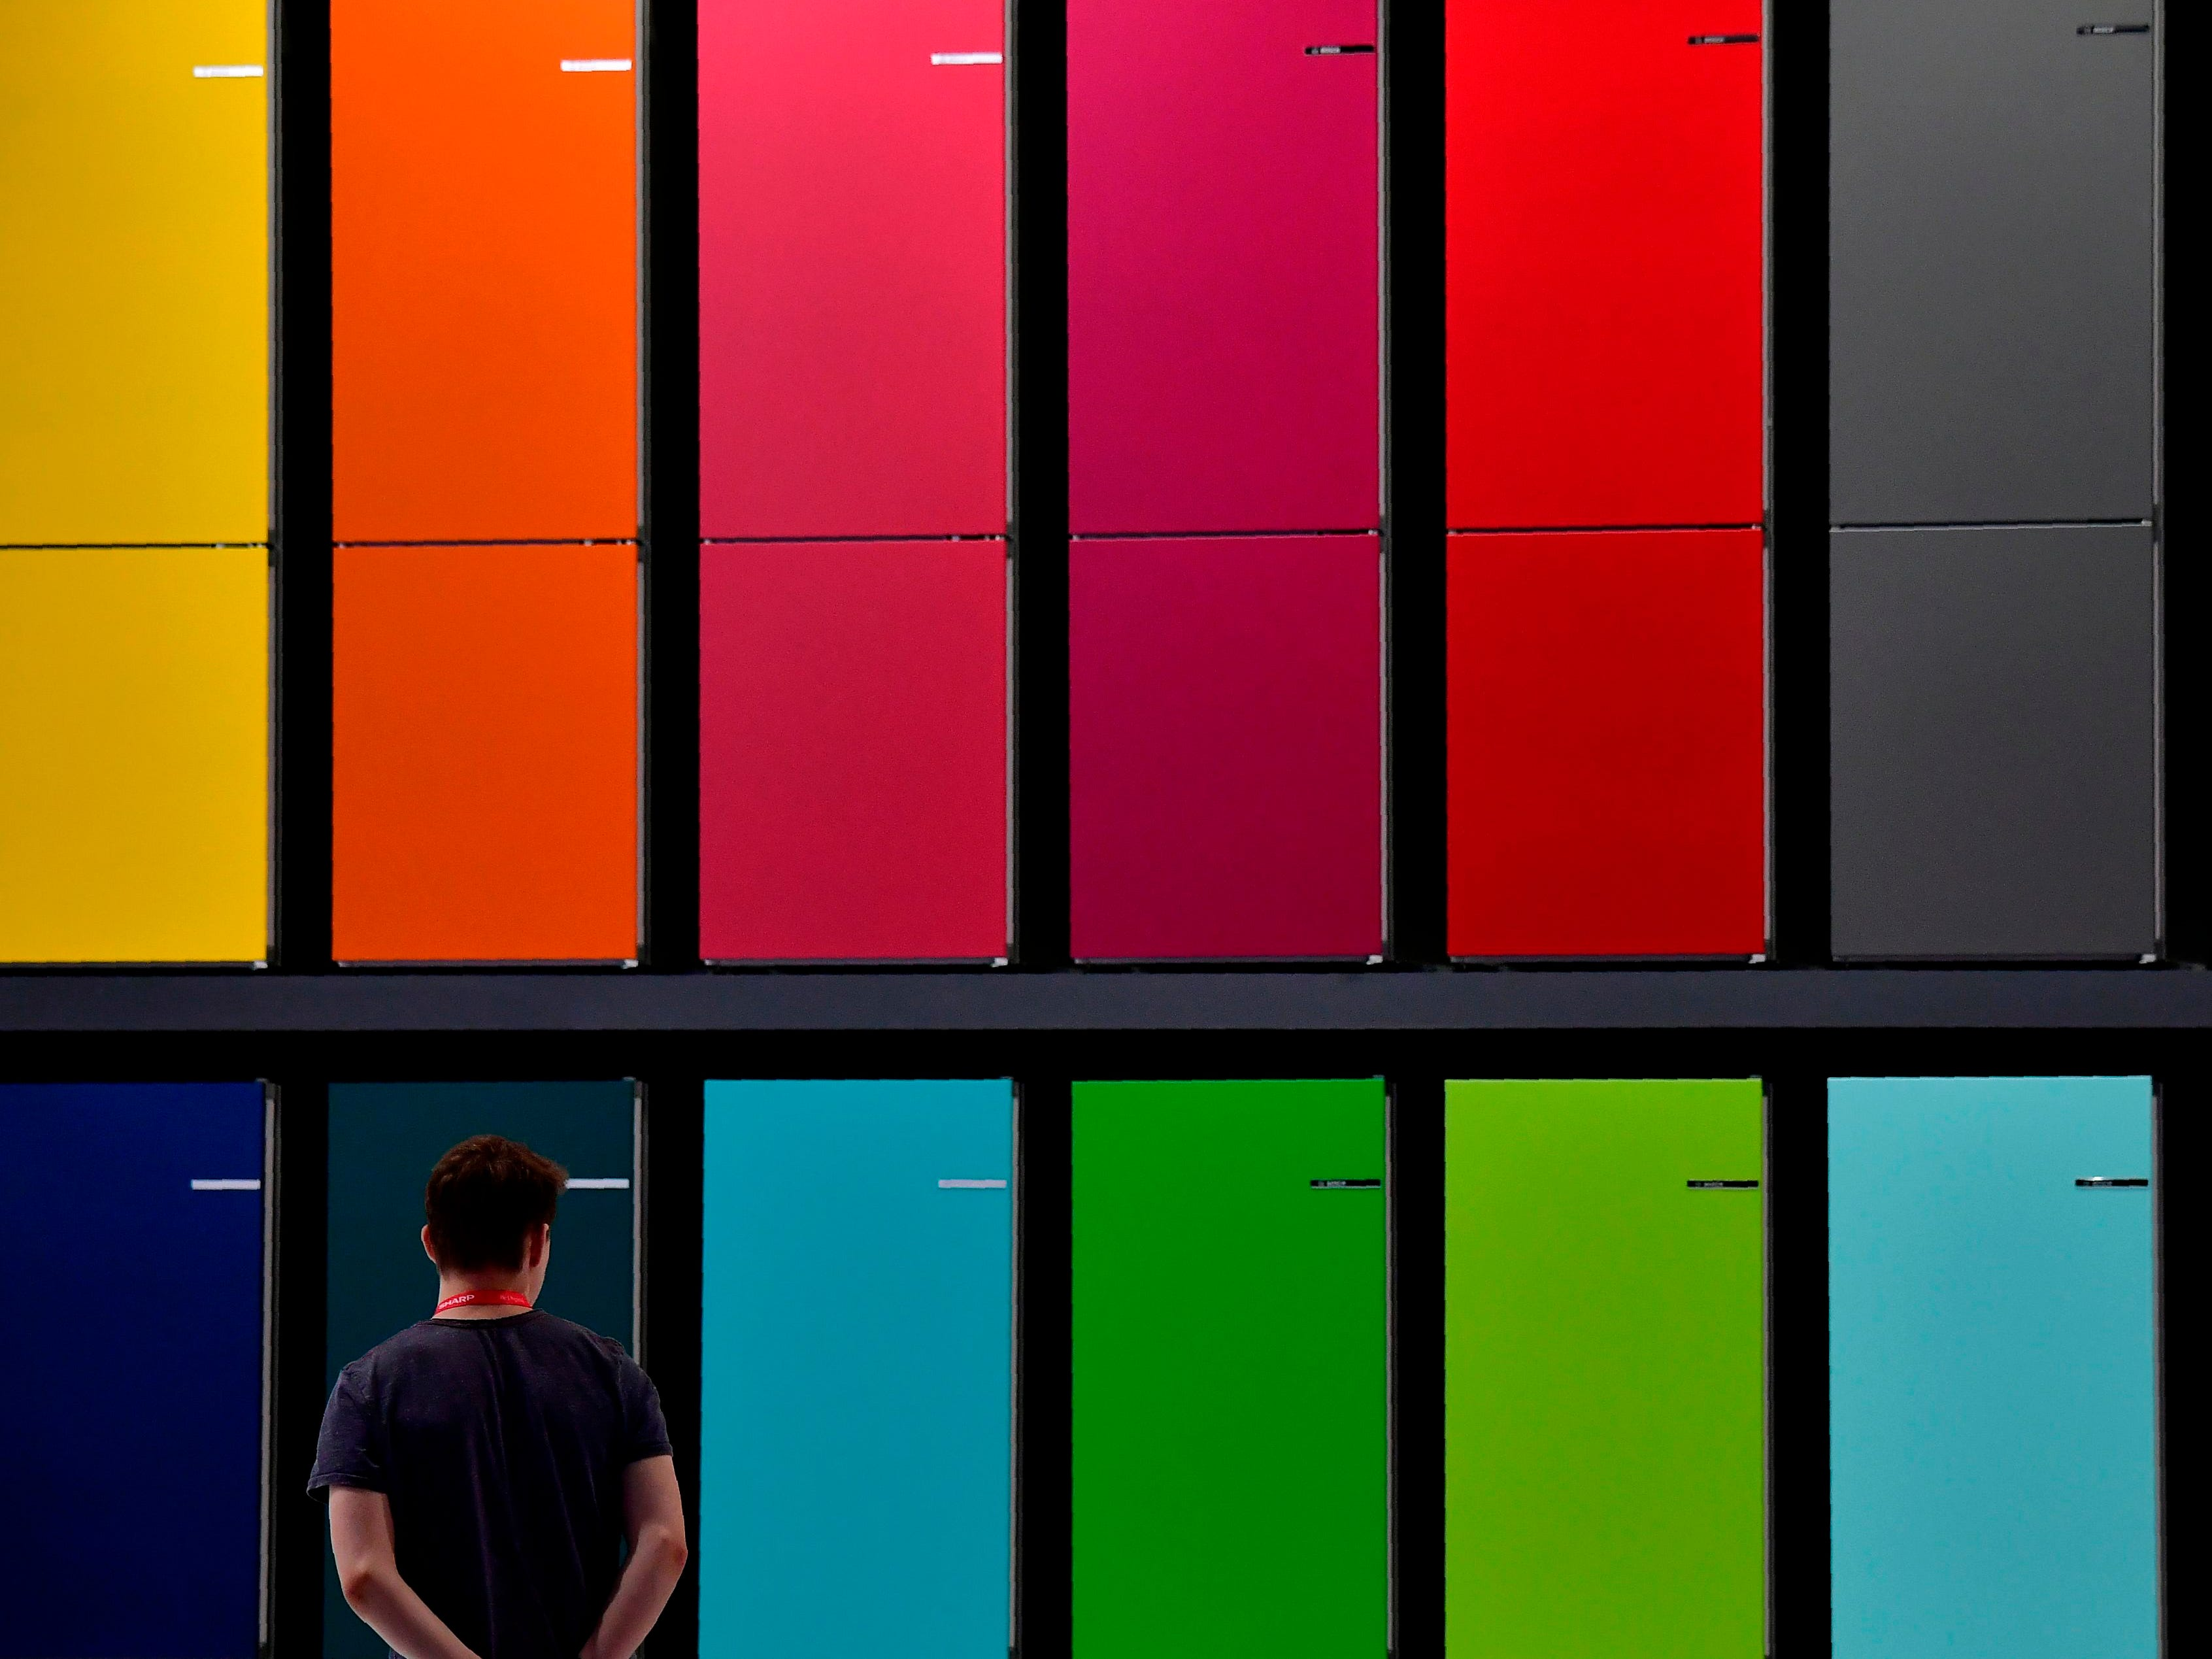 A workers passes by the Bosch booth with fridges on view, prior to the upcoming IFA, the world's leading trade show for consumer electronics and home appliances, in Berlin on August 29, 2018. (Photo by Tobias SCHWARZ / AFP)TOBIAS SCHWARZ/AFP/Getty Images ORIG FILE ID: AFP_18O7AX